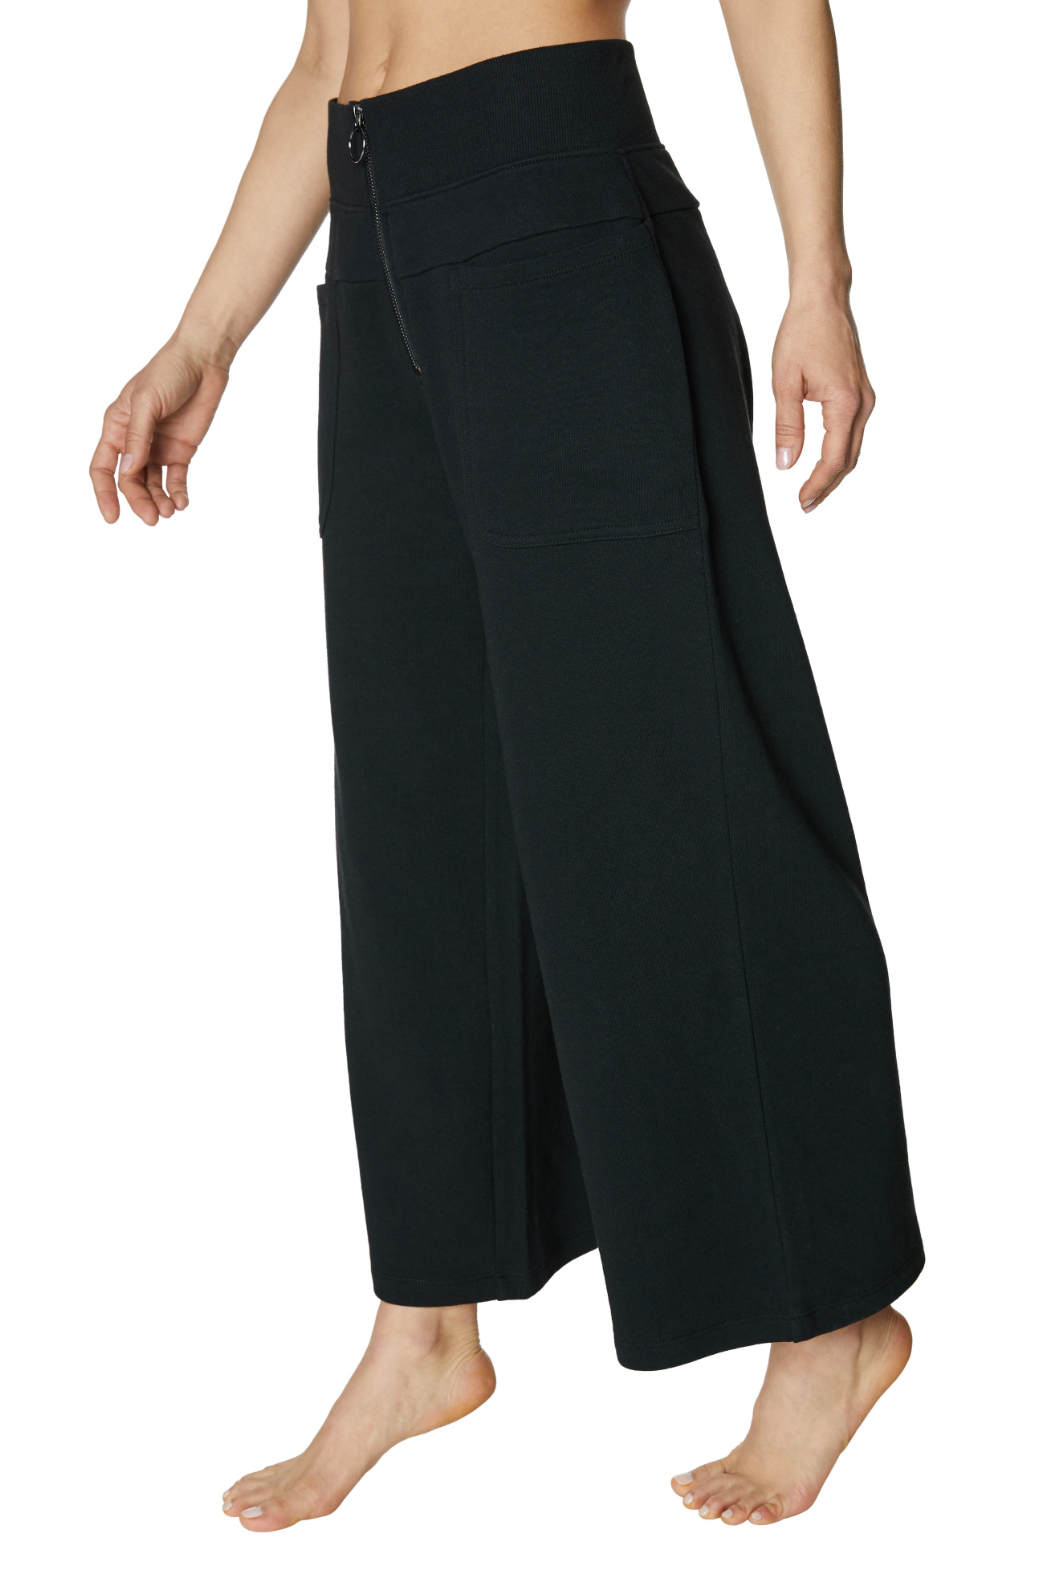 Betsey Johnson Zip Front Hi Waisted Crop Sweatpant - Front Full Image